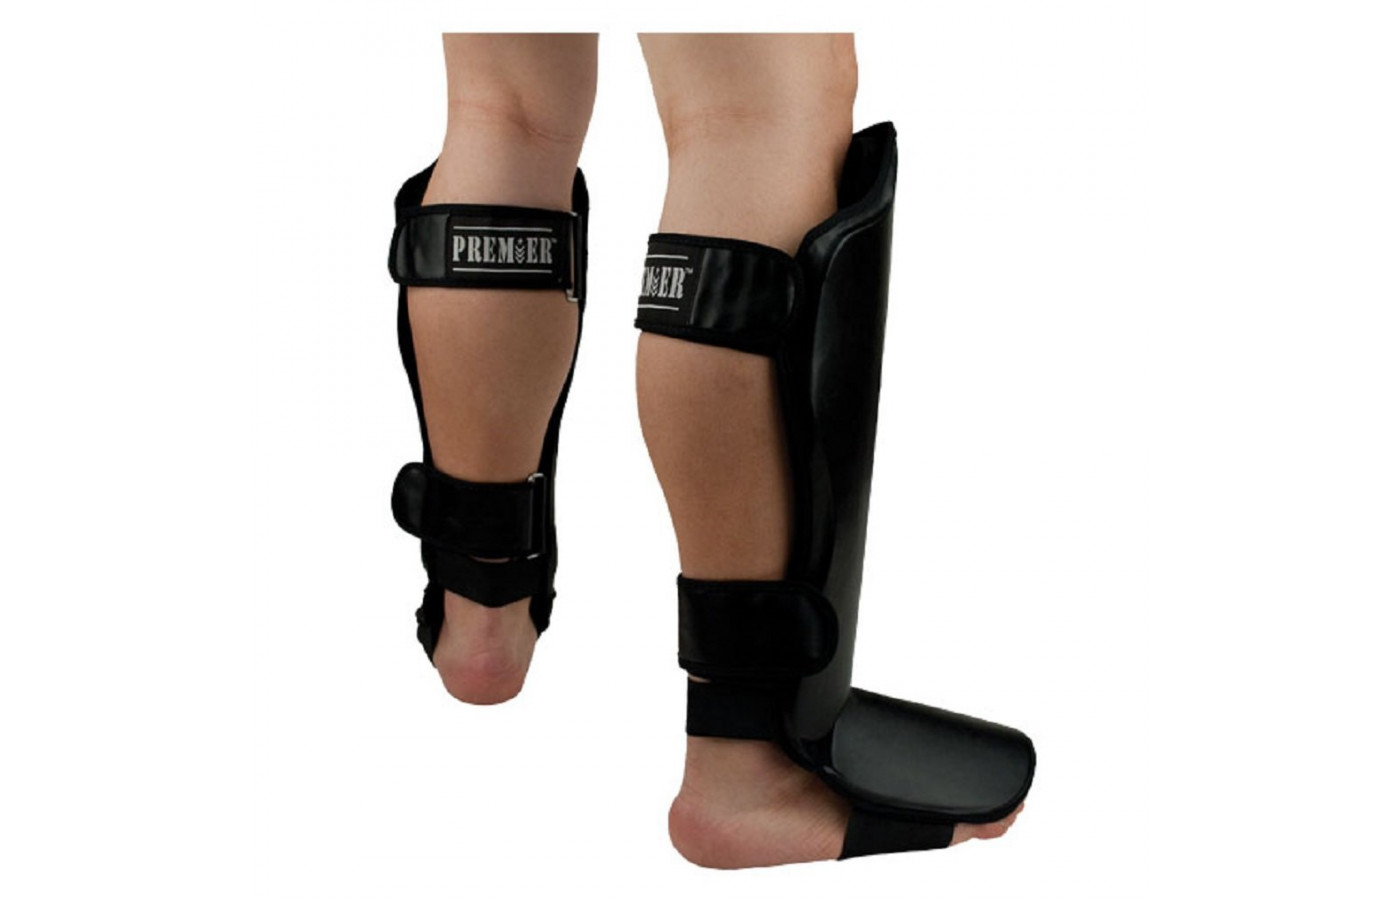 Revgear premier shin guards back